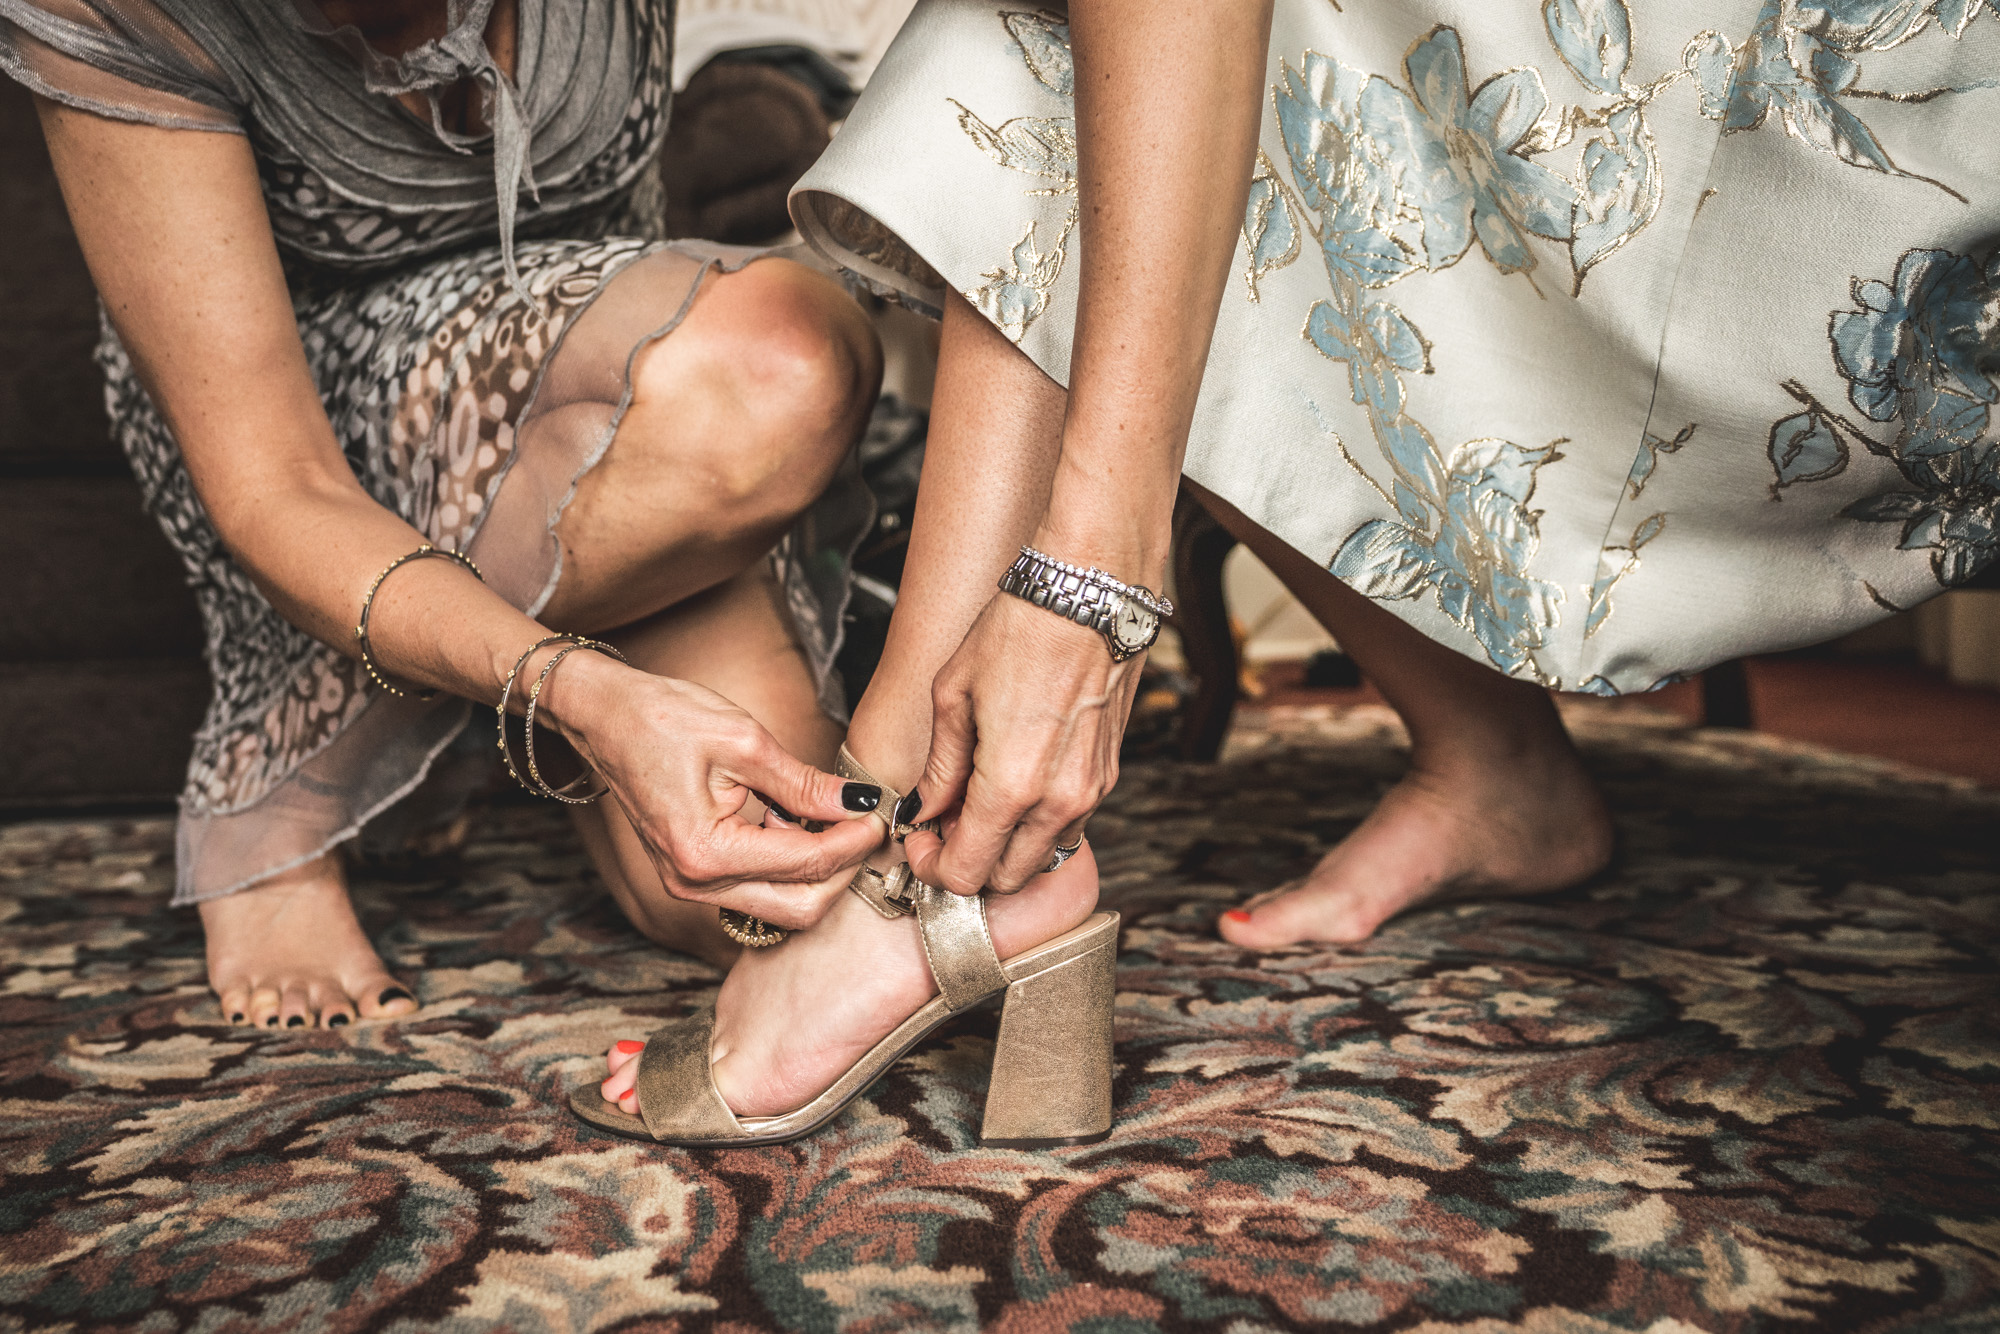 Color photo of a woman in a beautiful blue dress getting help from another woman in a dress getting her shoes on. Taken during her wedding day preparations in the Hotel Boulderado in Boulder, CO.